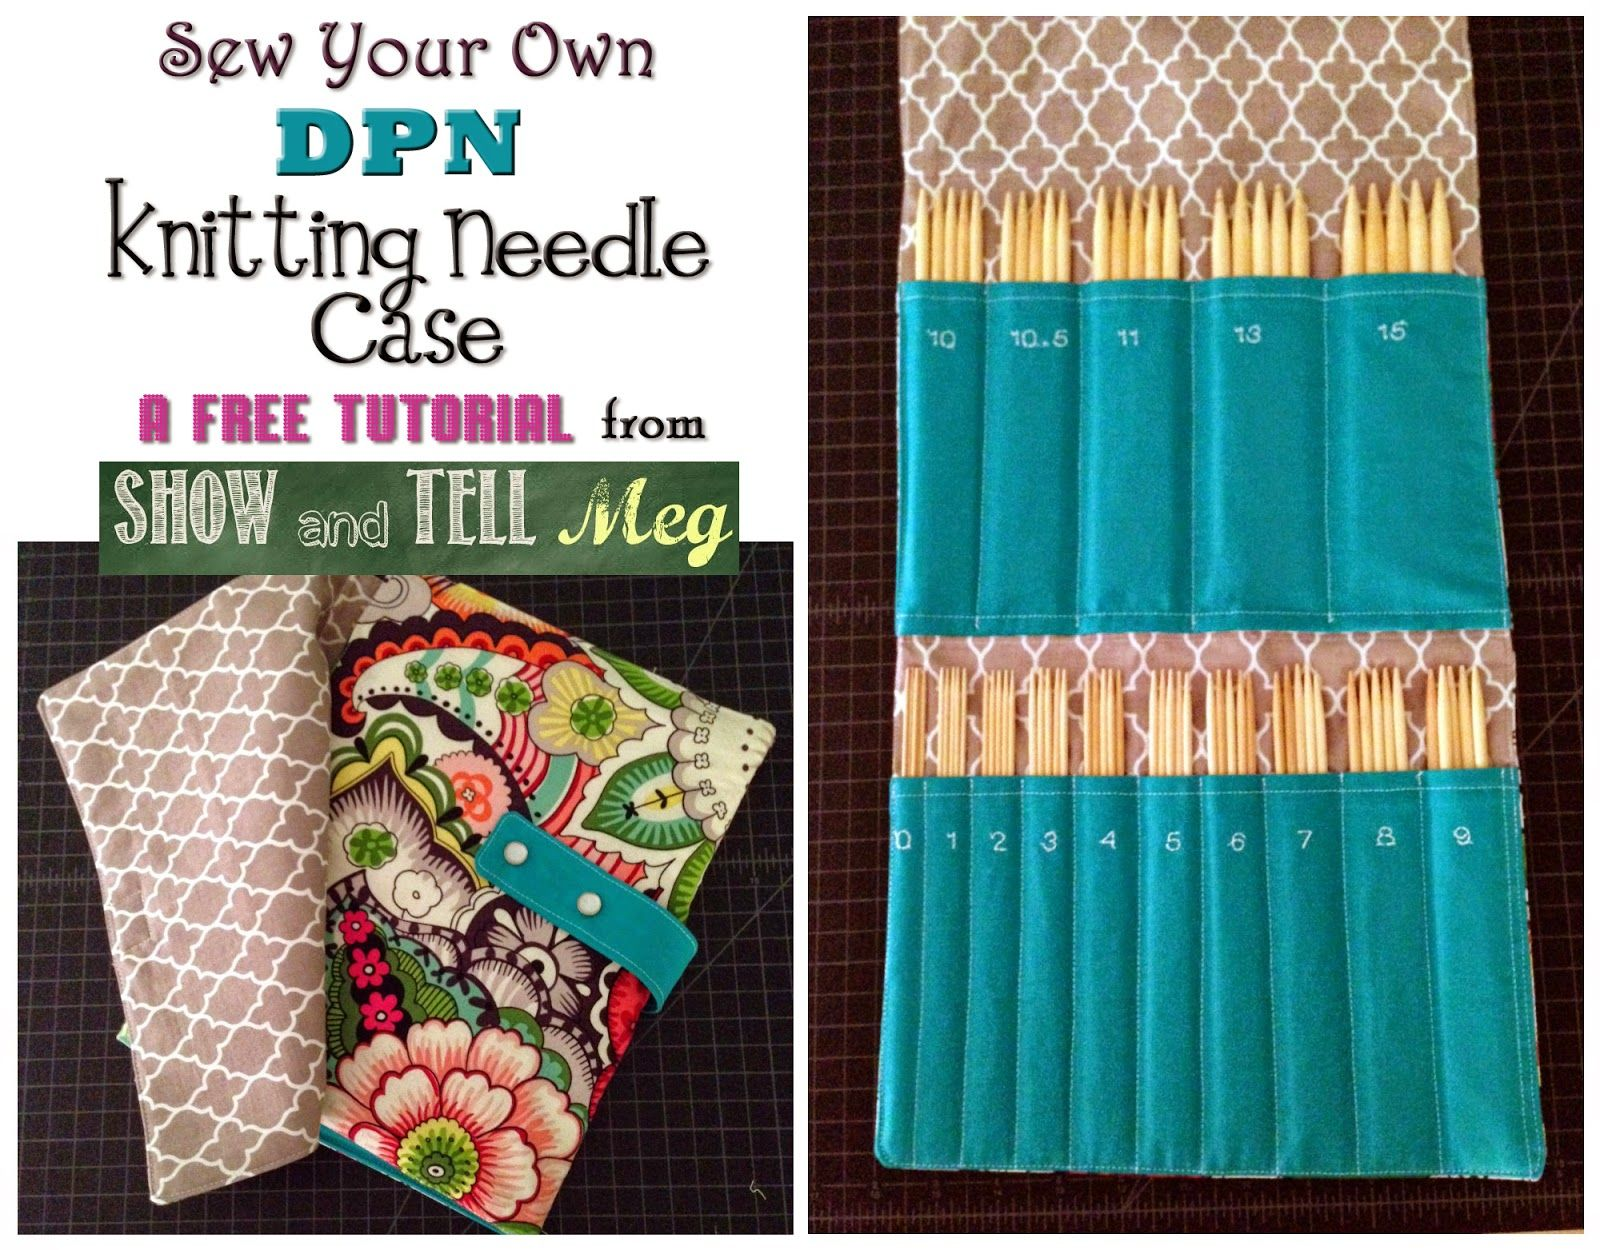 Knitting Needle Storage Case Pattern : How to sew your own dpn knitting needle case free